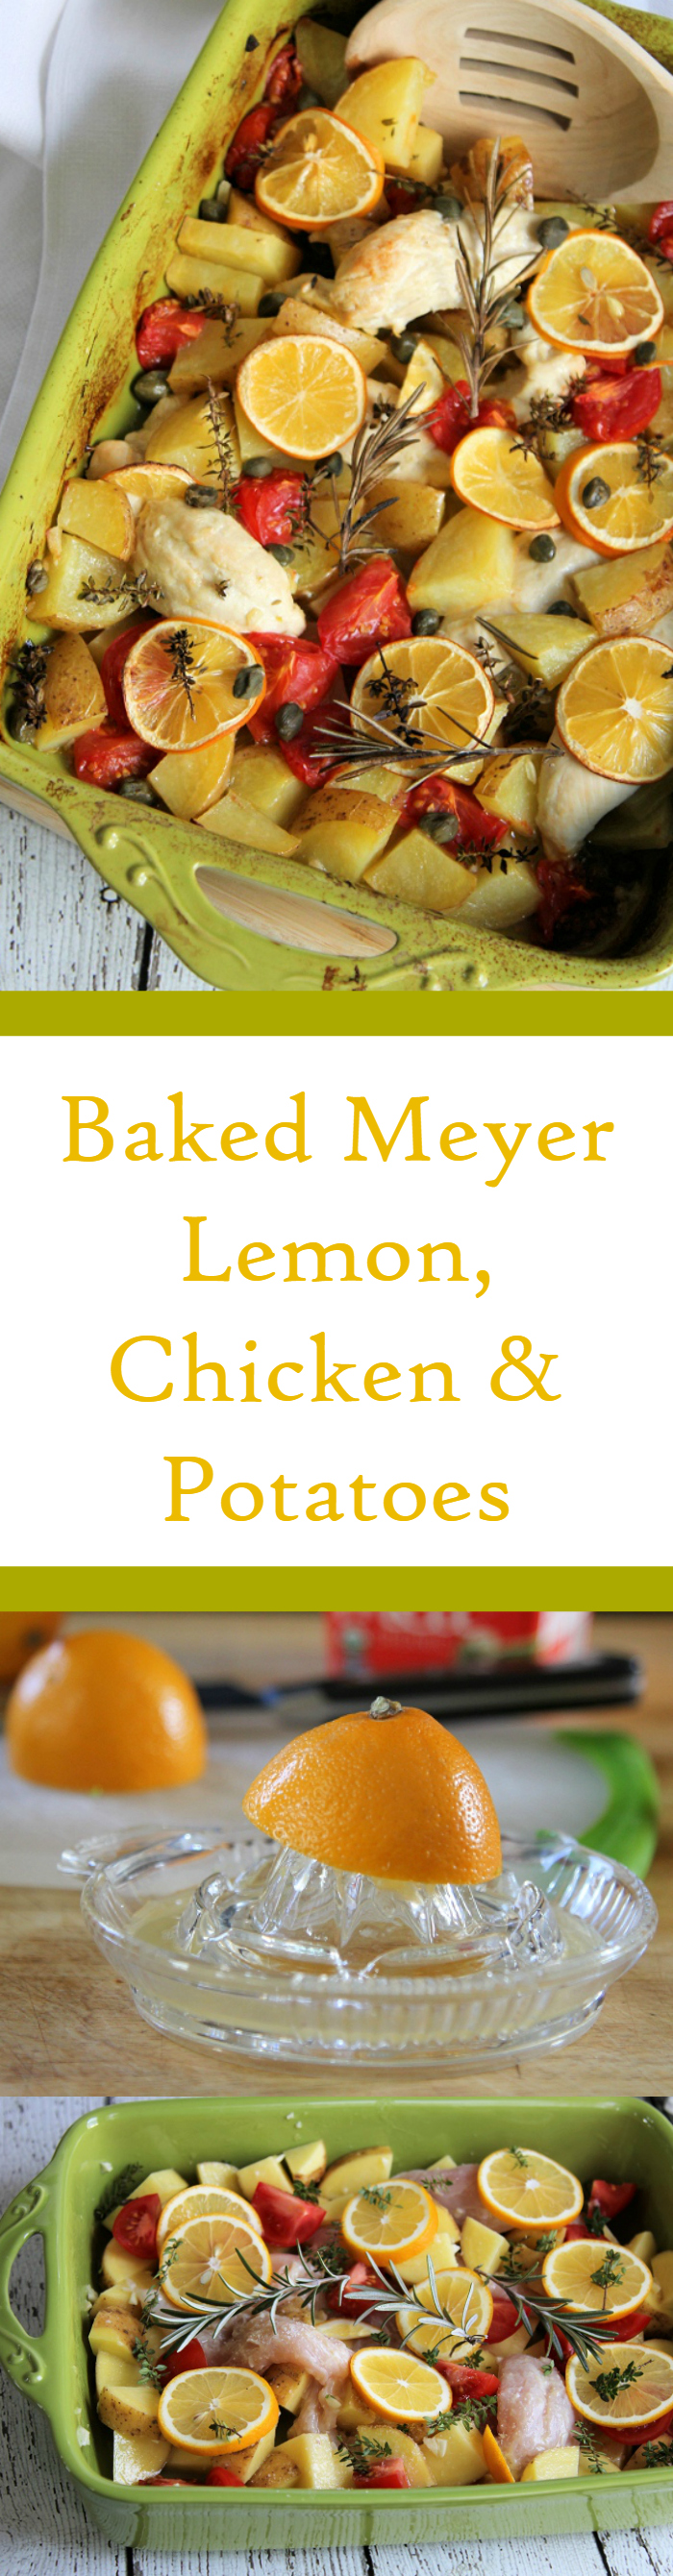 Baked Meyer Lemon Chicken & Potatoes.  An easy meal bursting with flavor.